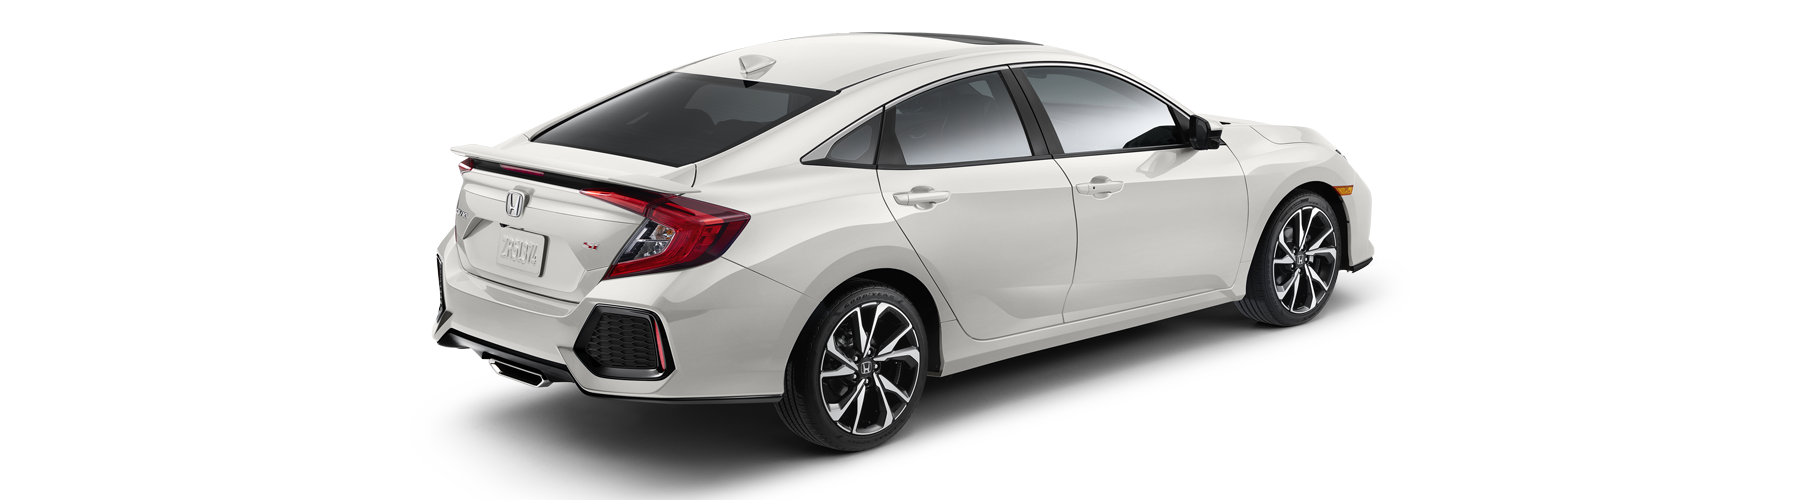 2017 Honda Civic Si Sedan Rear Angle